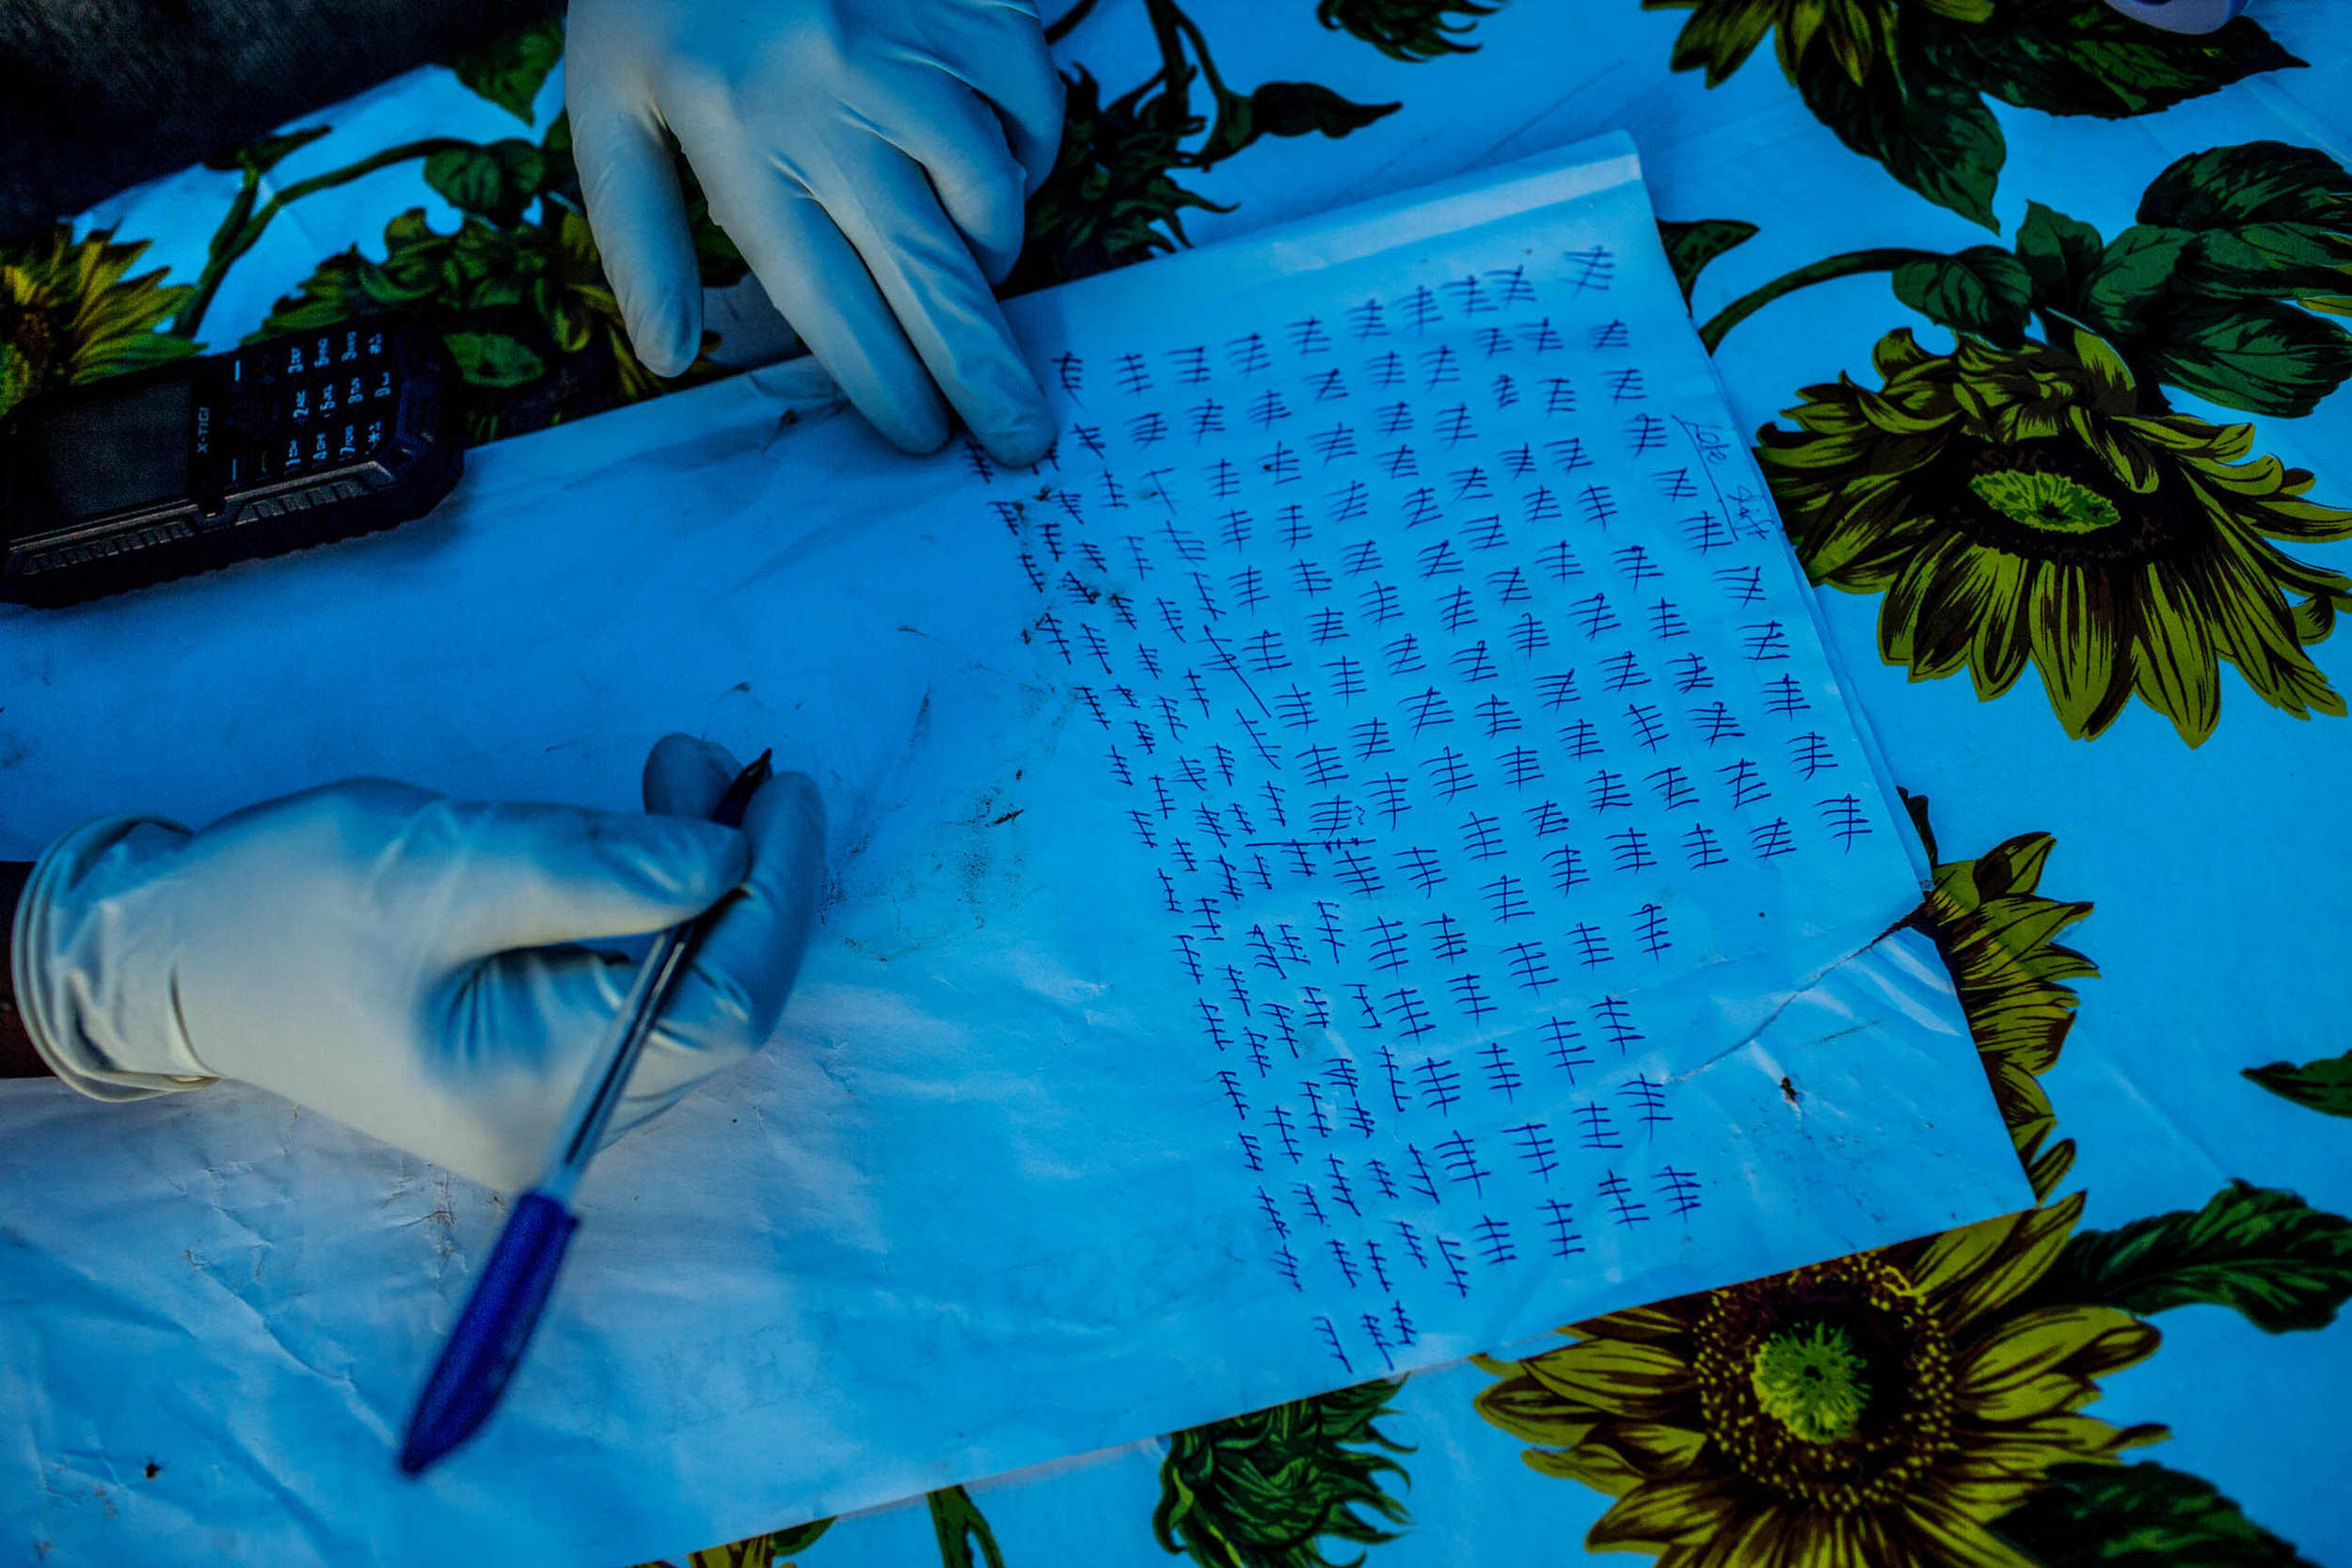 A government health worker keeps tally of those who pass an Ebola quarantine checkpoint in the road leading from Freetown to Kenema, Sierra Leone on Saturday August 16, 2014. The government of Sierra Leone has set up numerous checkpoints leading into and out of heavily Ebola affected areas. (Pete Muller/Prime for the Washington Post)